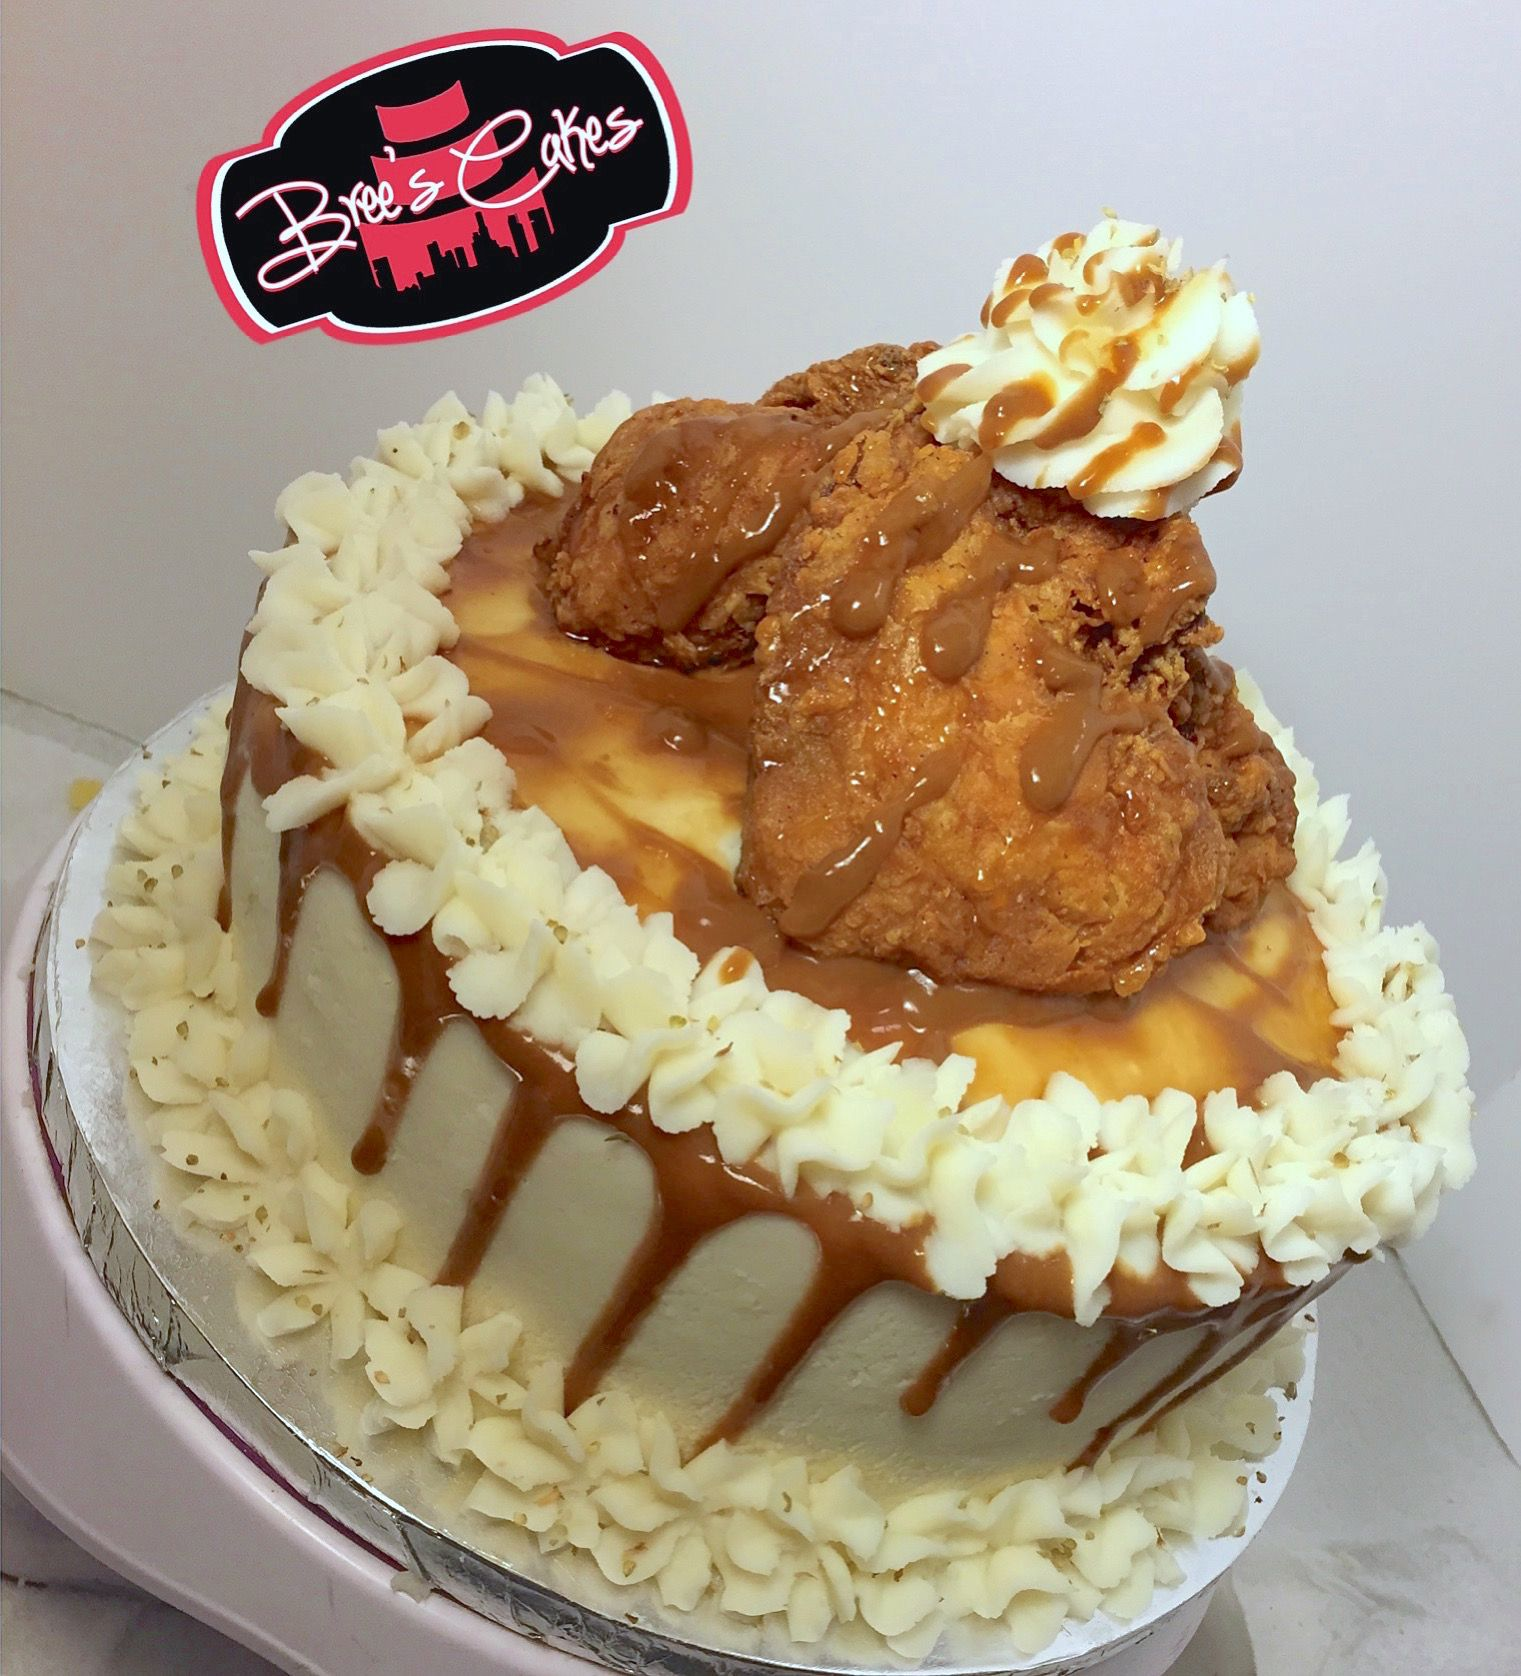 Cake for dinner is OK when its made with fried chicken mashed